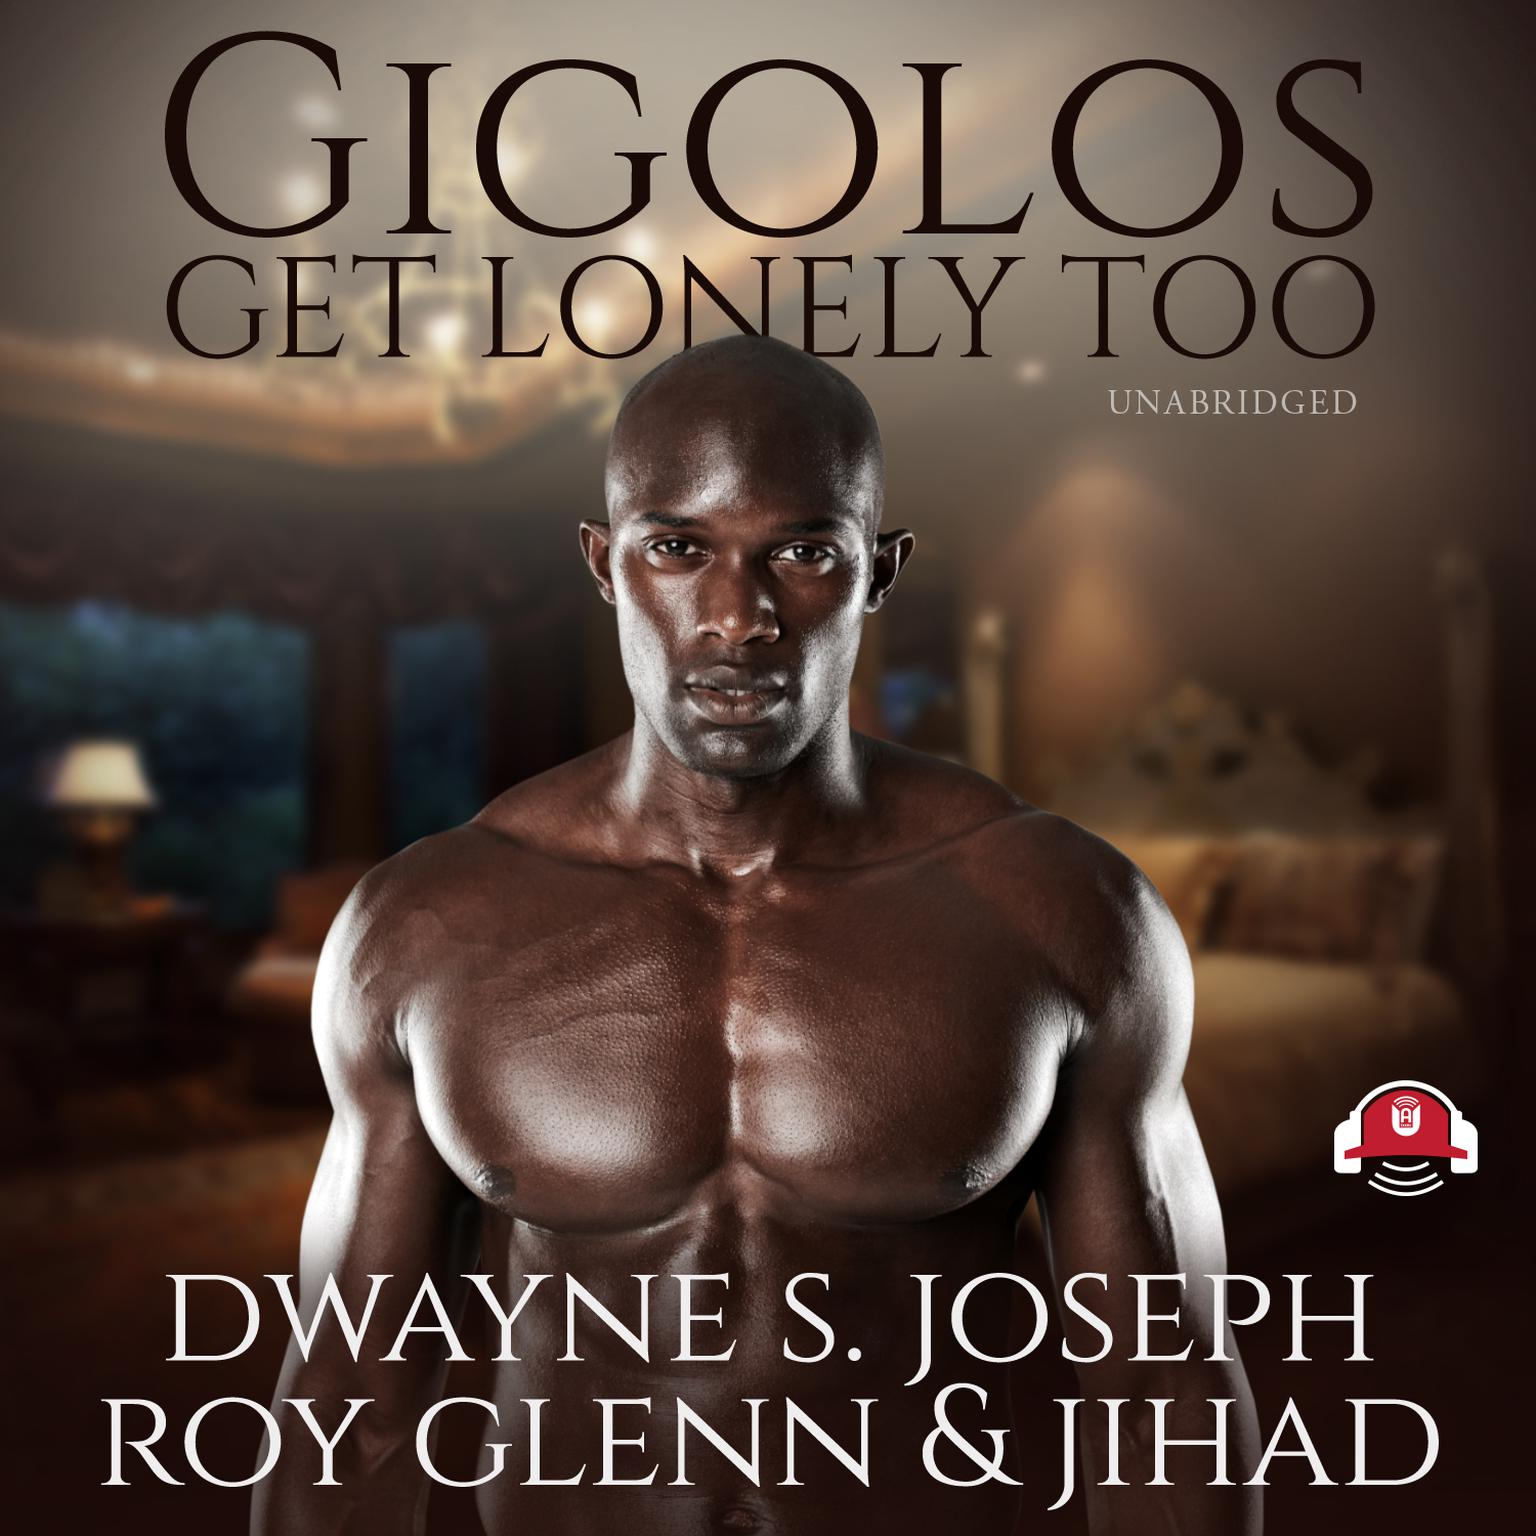 Printable Gigolos Get Lonely Too Audiobook Cover Art